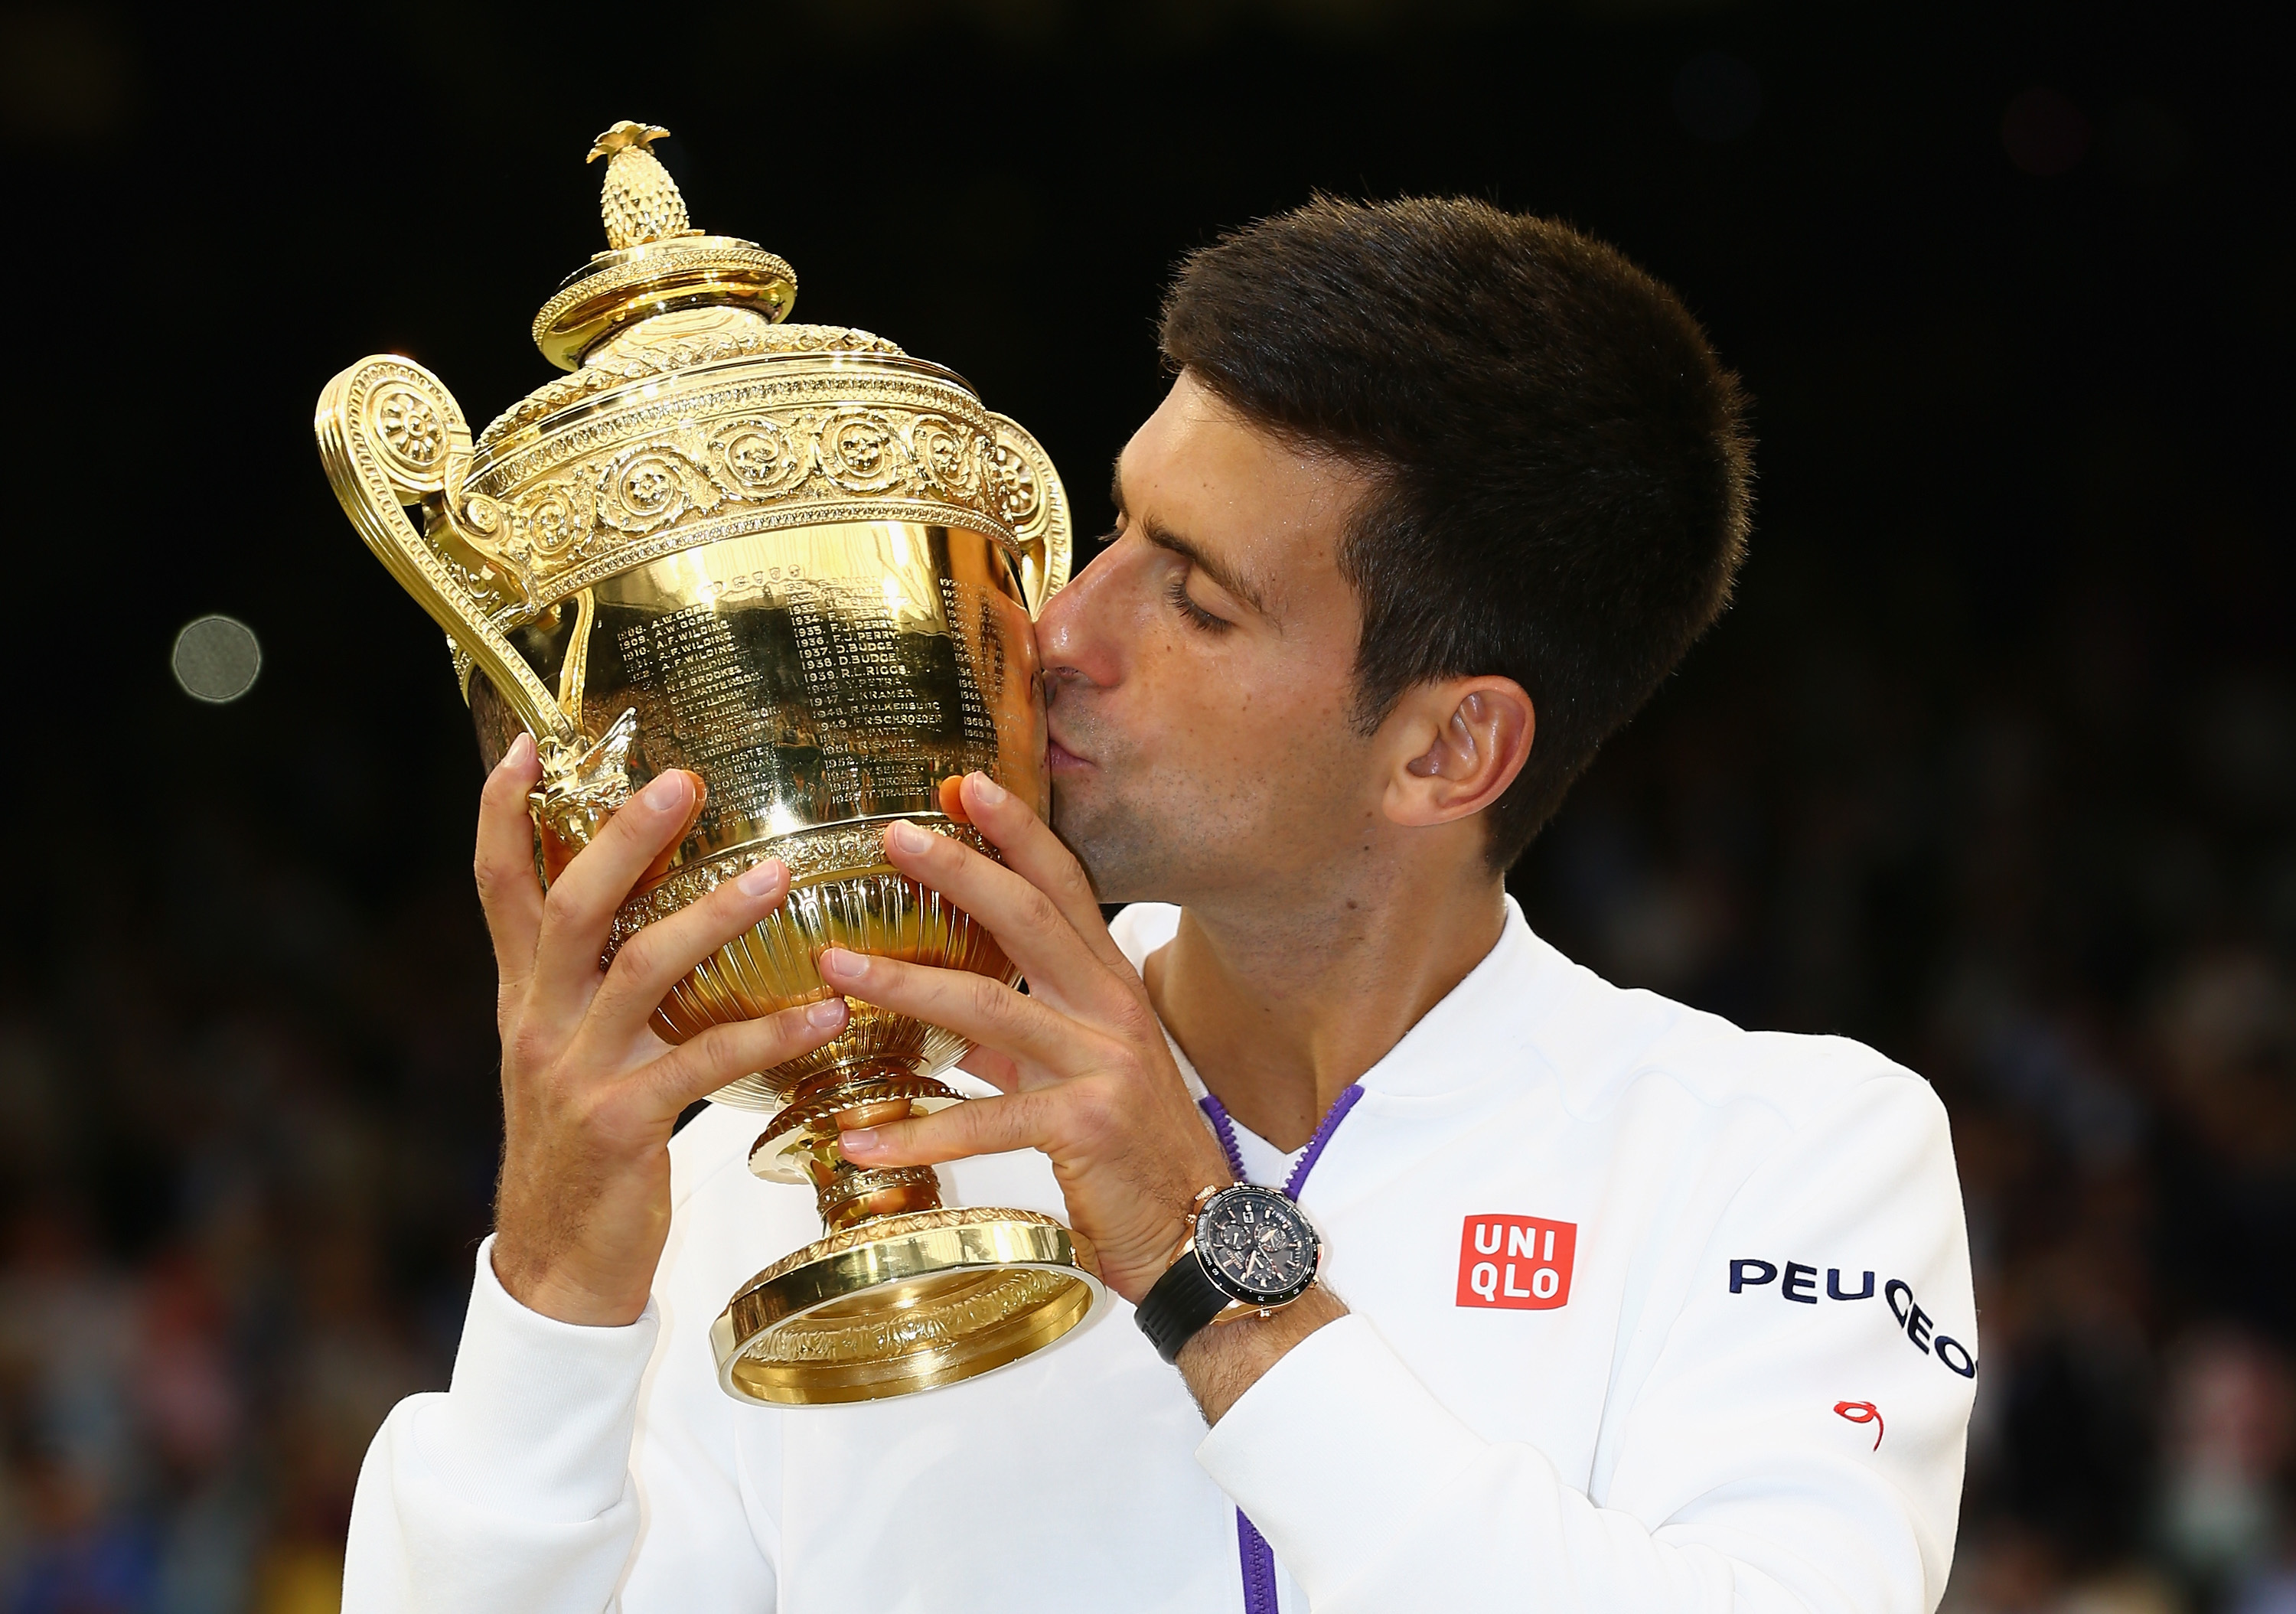 Novak Djokovic will be the man to beat at Wimbledon.